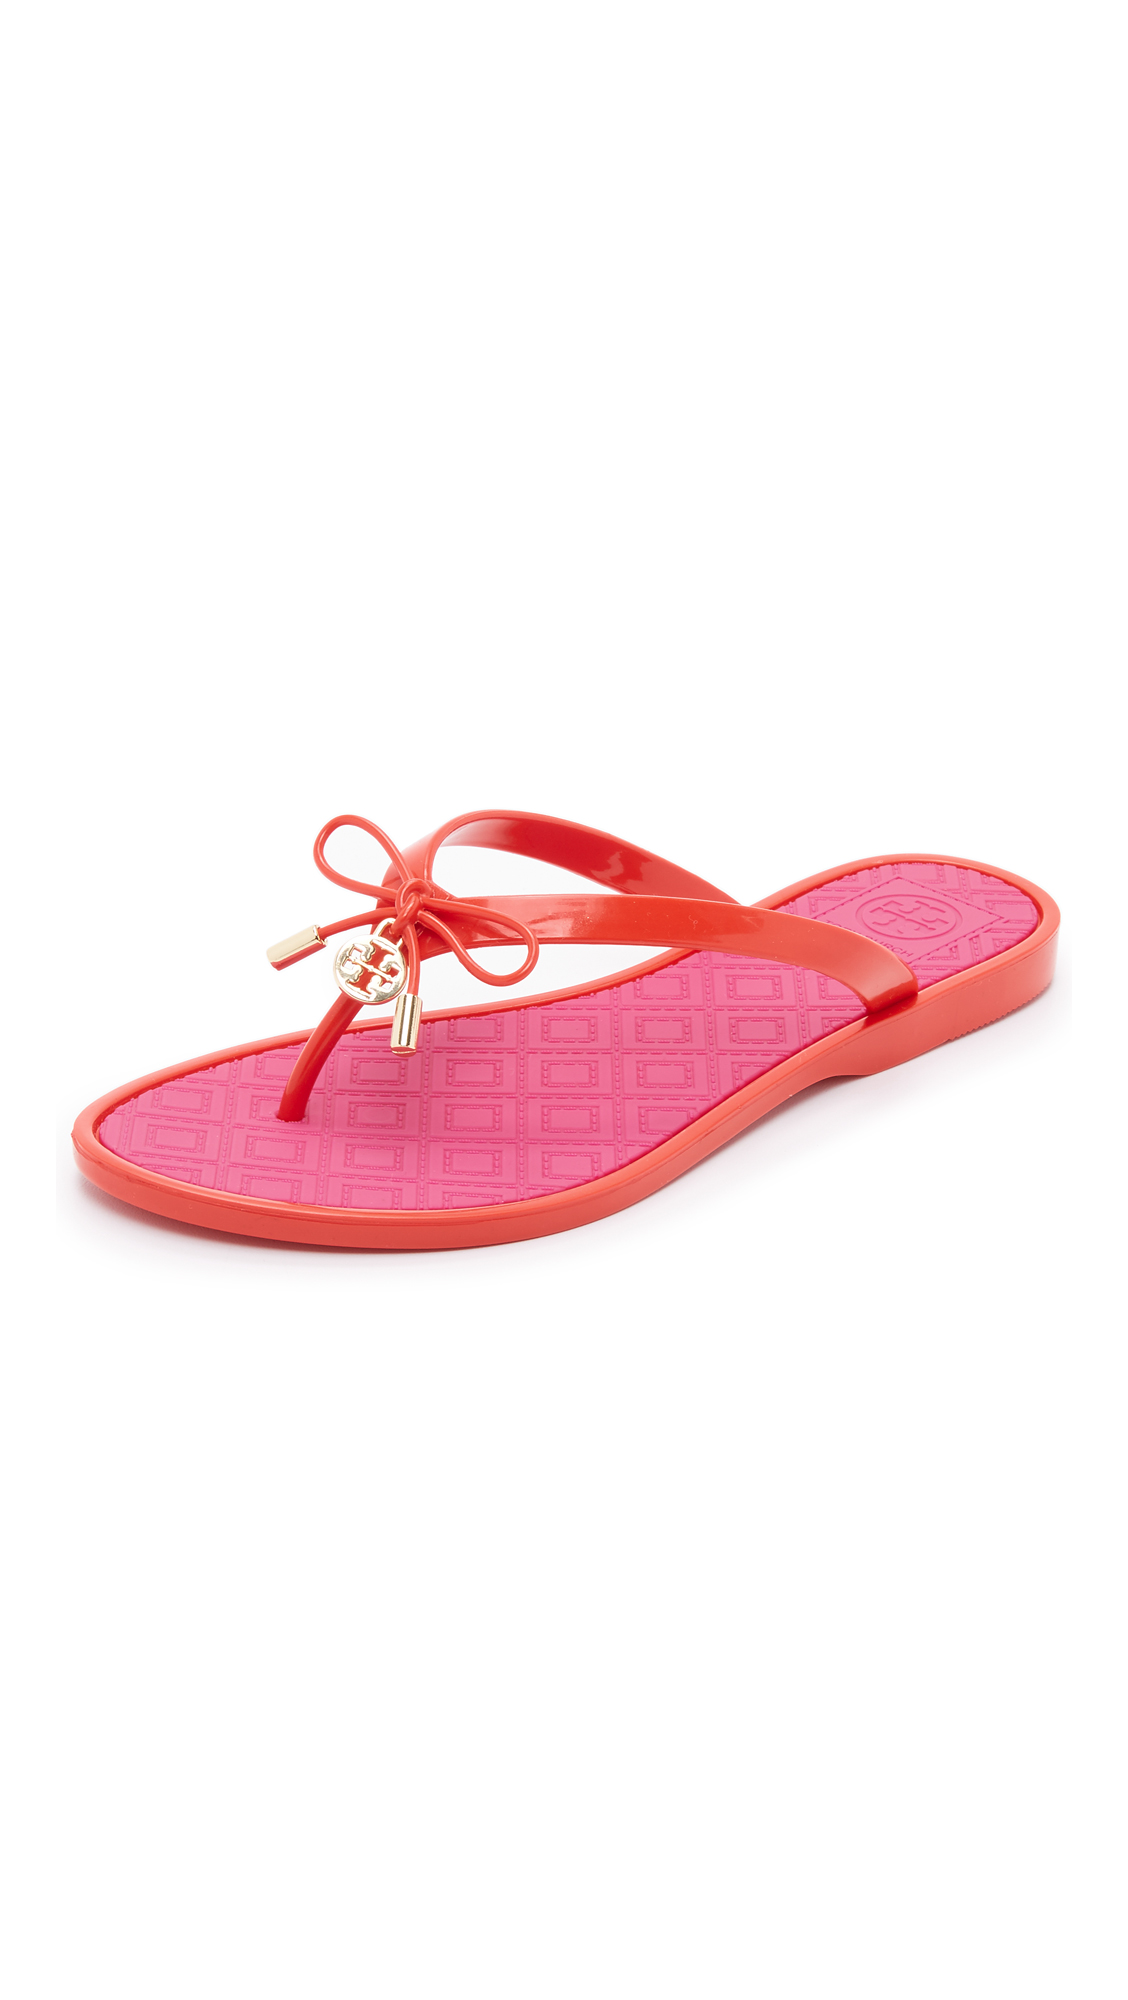 5e0b8a25d333 Tory Burch Two Tone Jelly Bow Thong Sandals